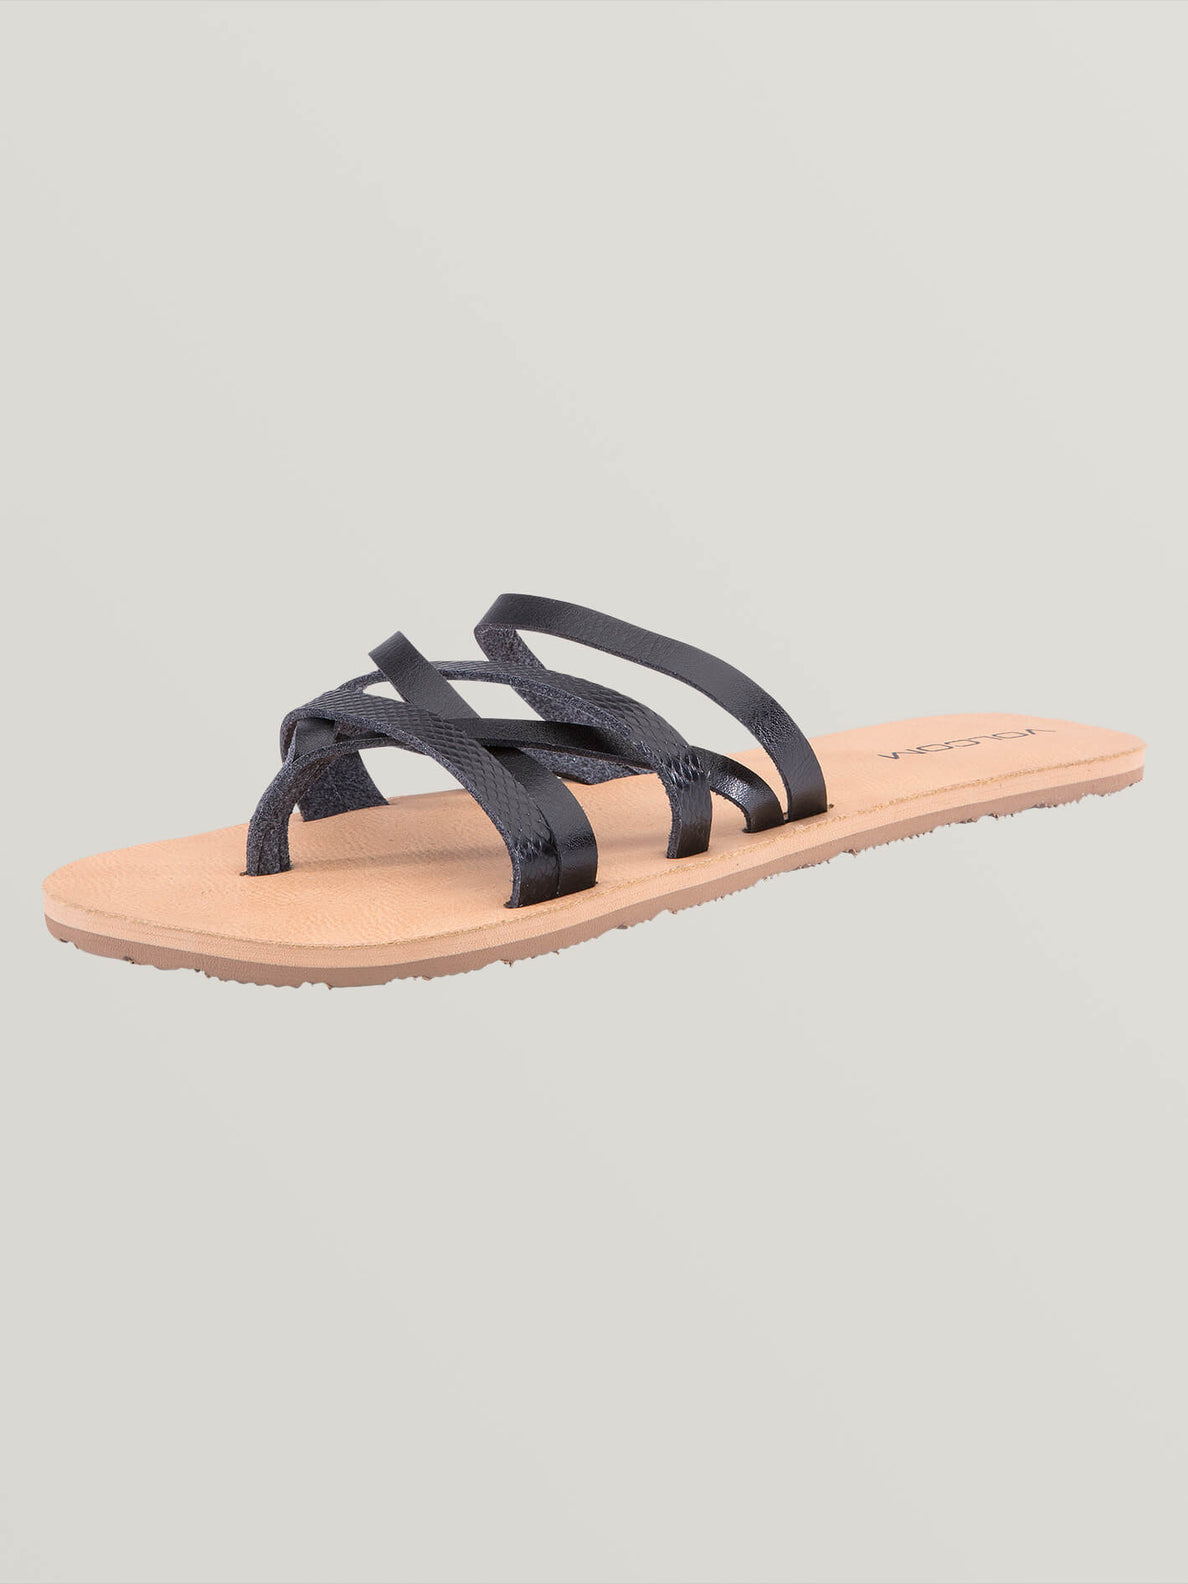 Legacy Sandals In Black Combo, Back View